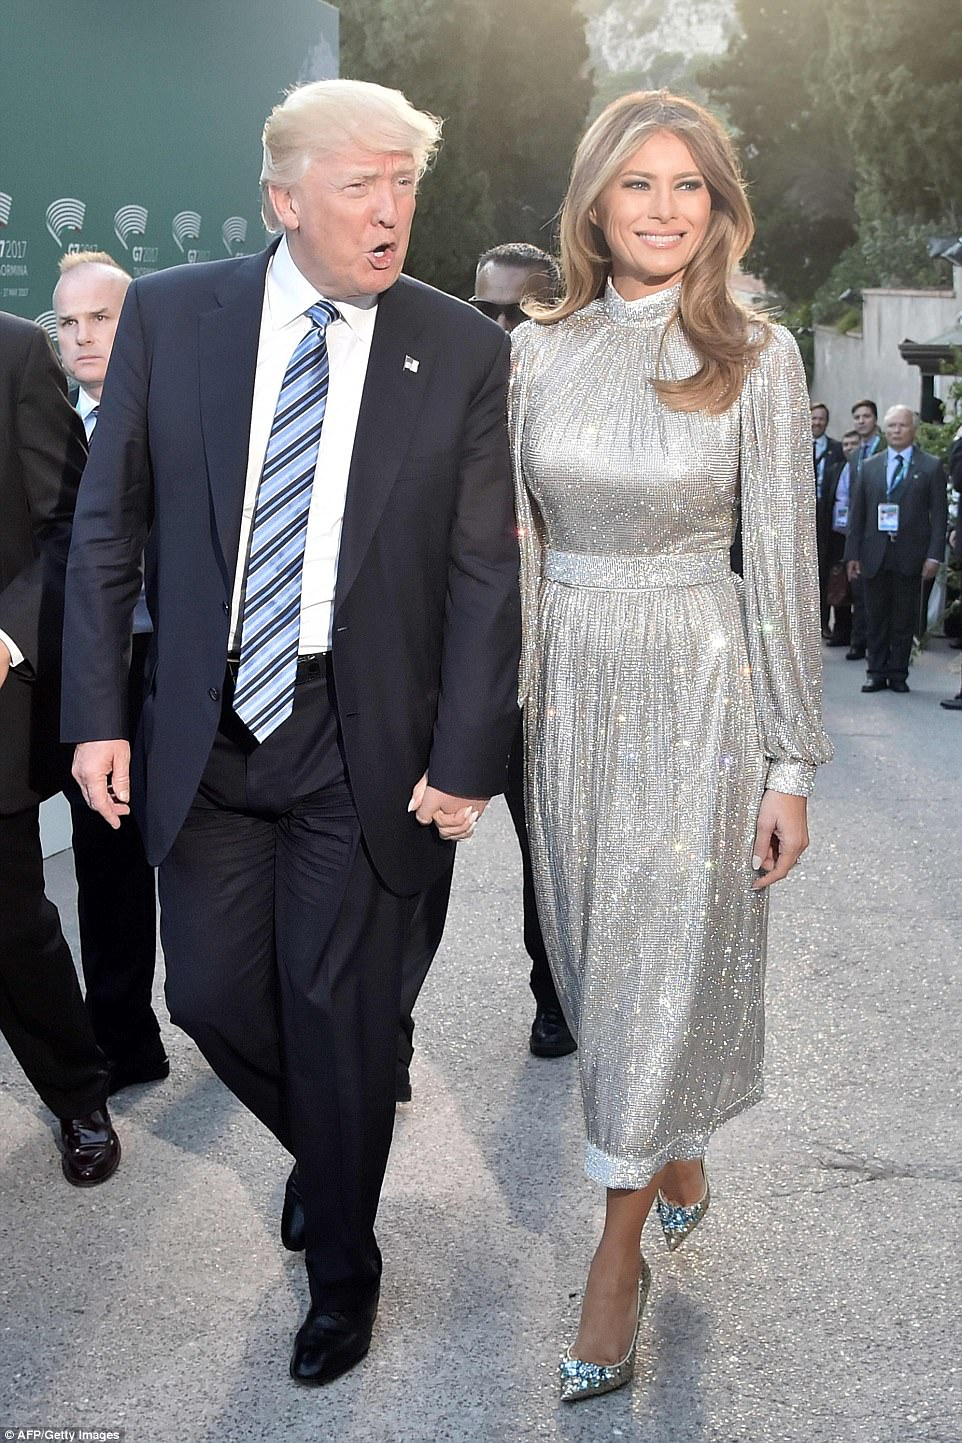 Melania and Donald Trump held hands as they arrived at the Ancient Theatre of Taormina for a concert by the La Scala Philharmonic Orchestra on Friday evening, alongside President Trump's fellow G7 leaders and their partners